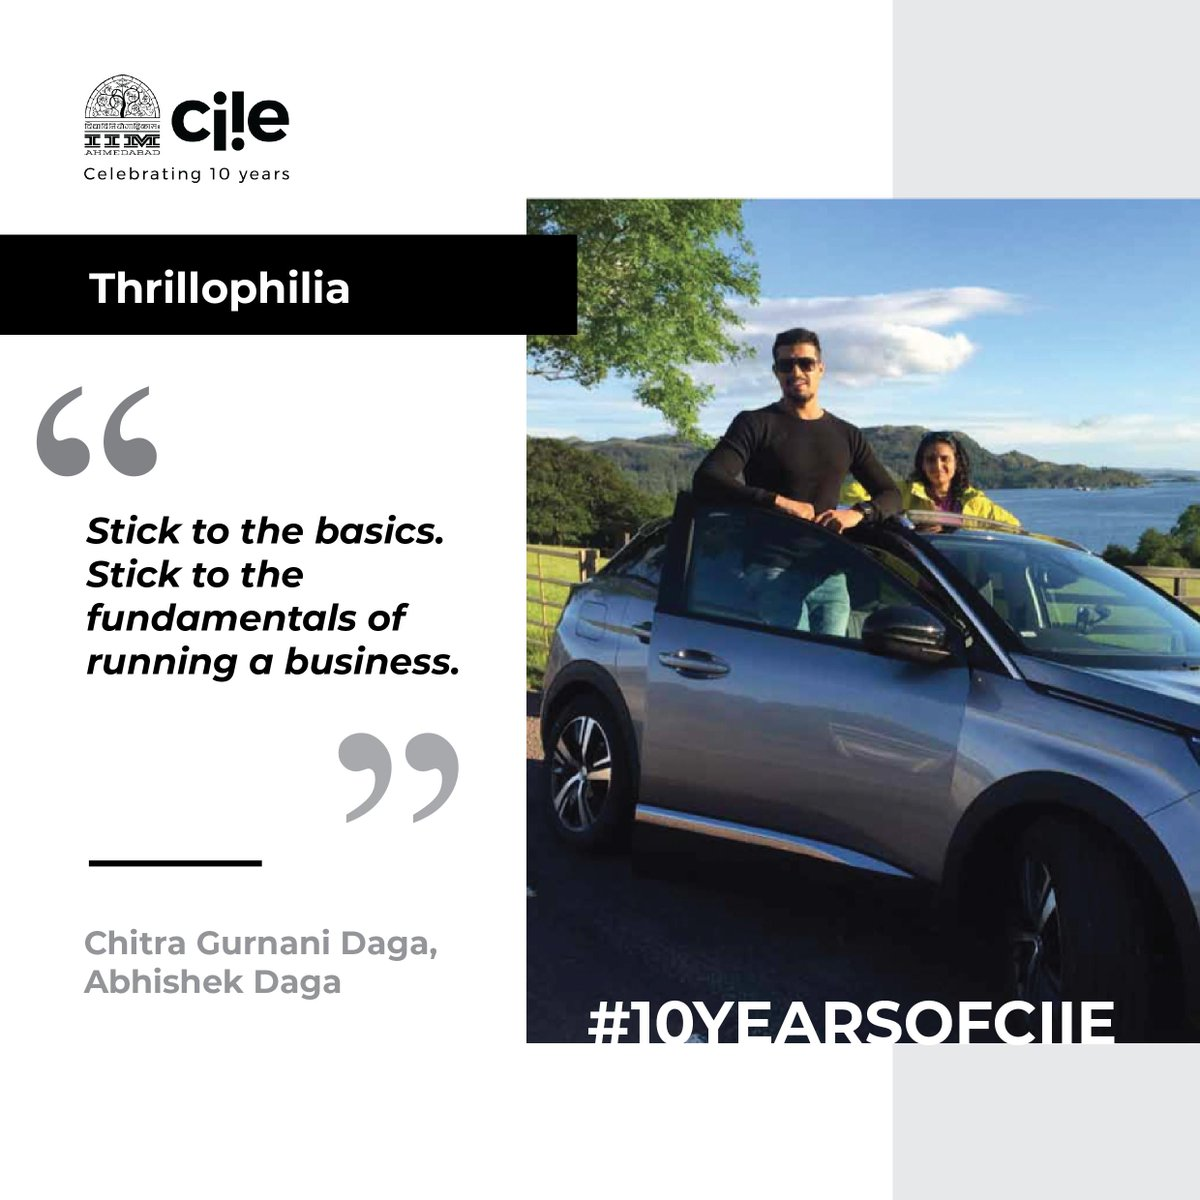 🆕 #OfExperimentsAndEntrepreneurs story -  'Fun is a serious business' for @thrillophilia co-founders Chitra Gurnani Daga & Abhishek Daga. Know more 👉🏽 https://t.co/YwyNMCqJ50 #10YearsOfCIIE https://t.co/gJUbkHR7wv